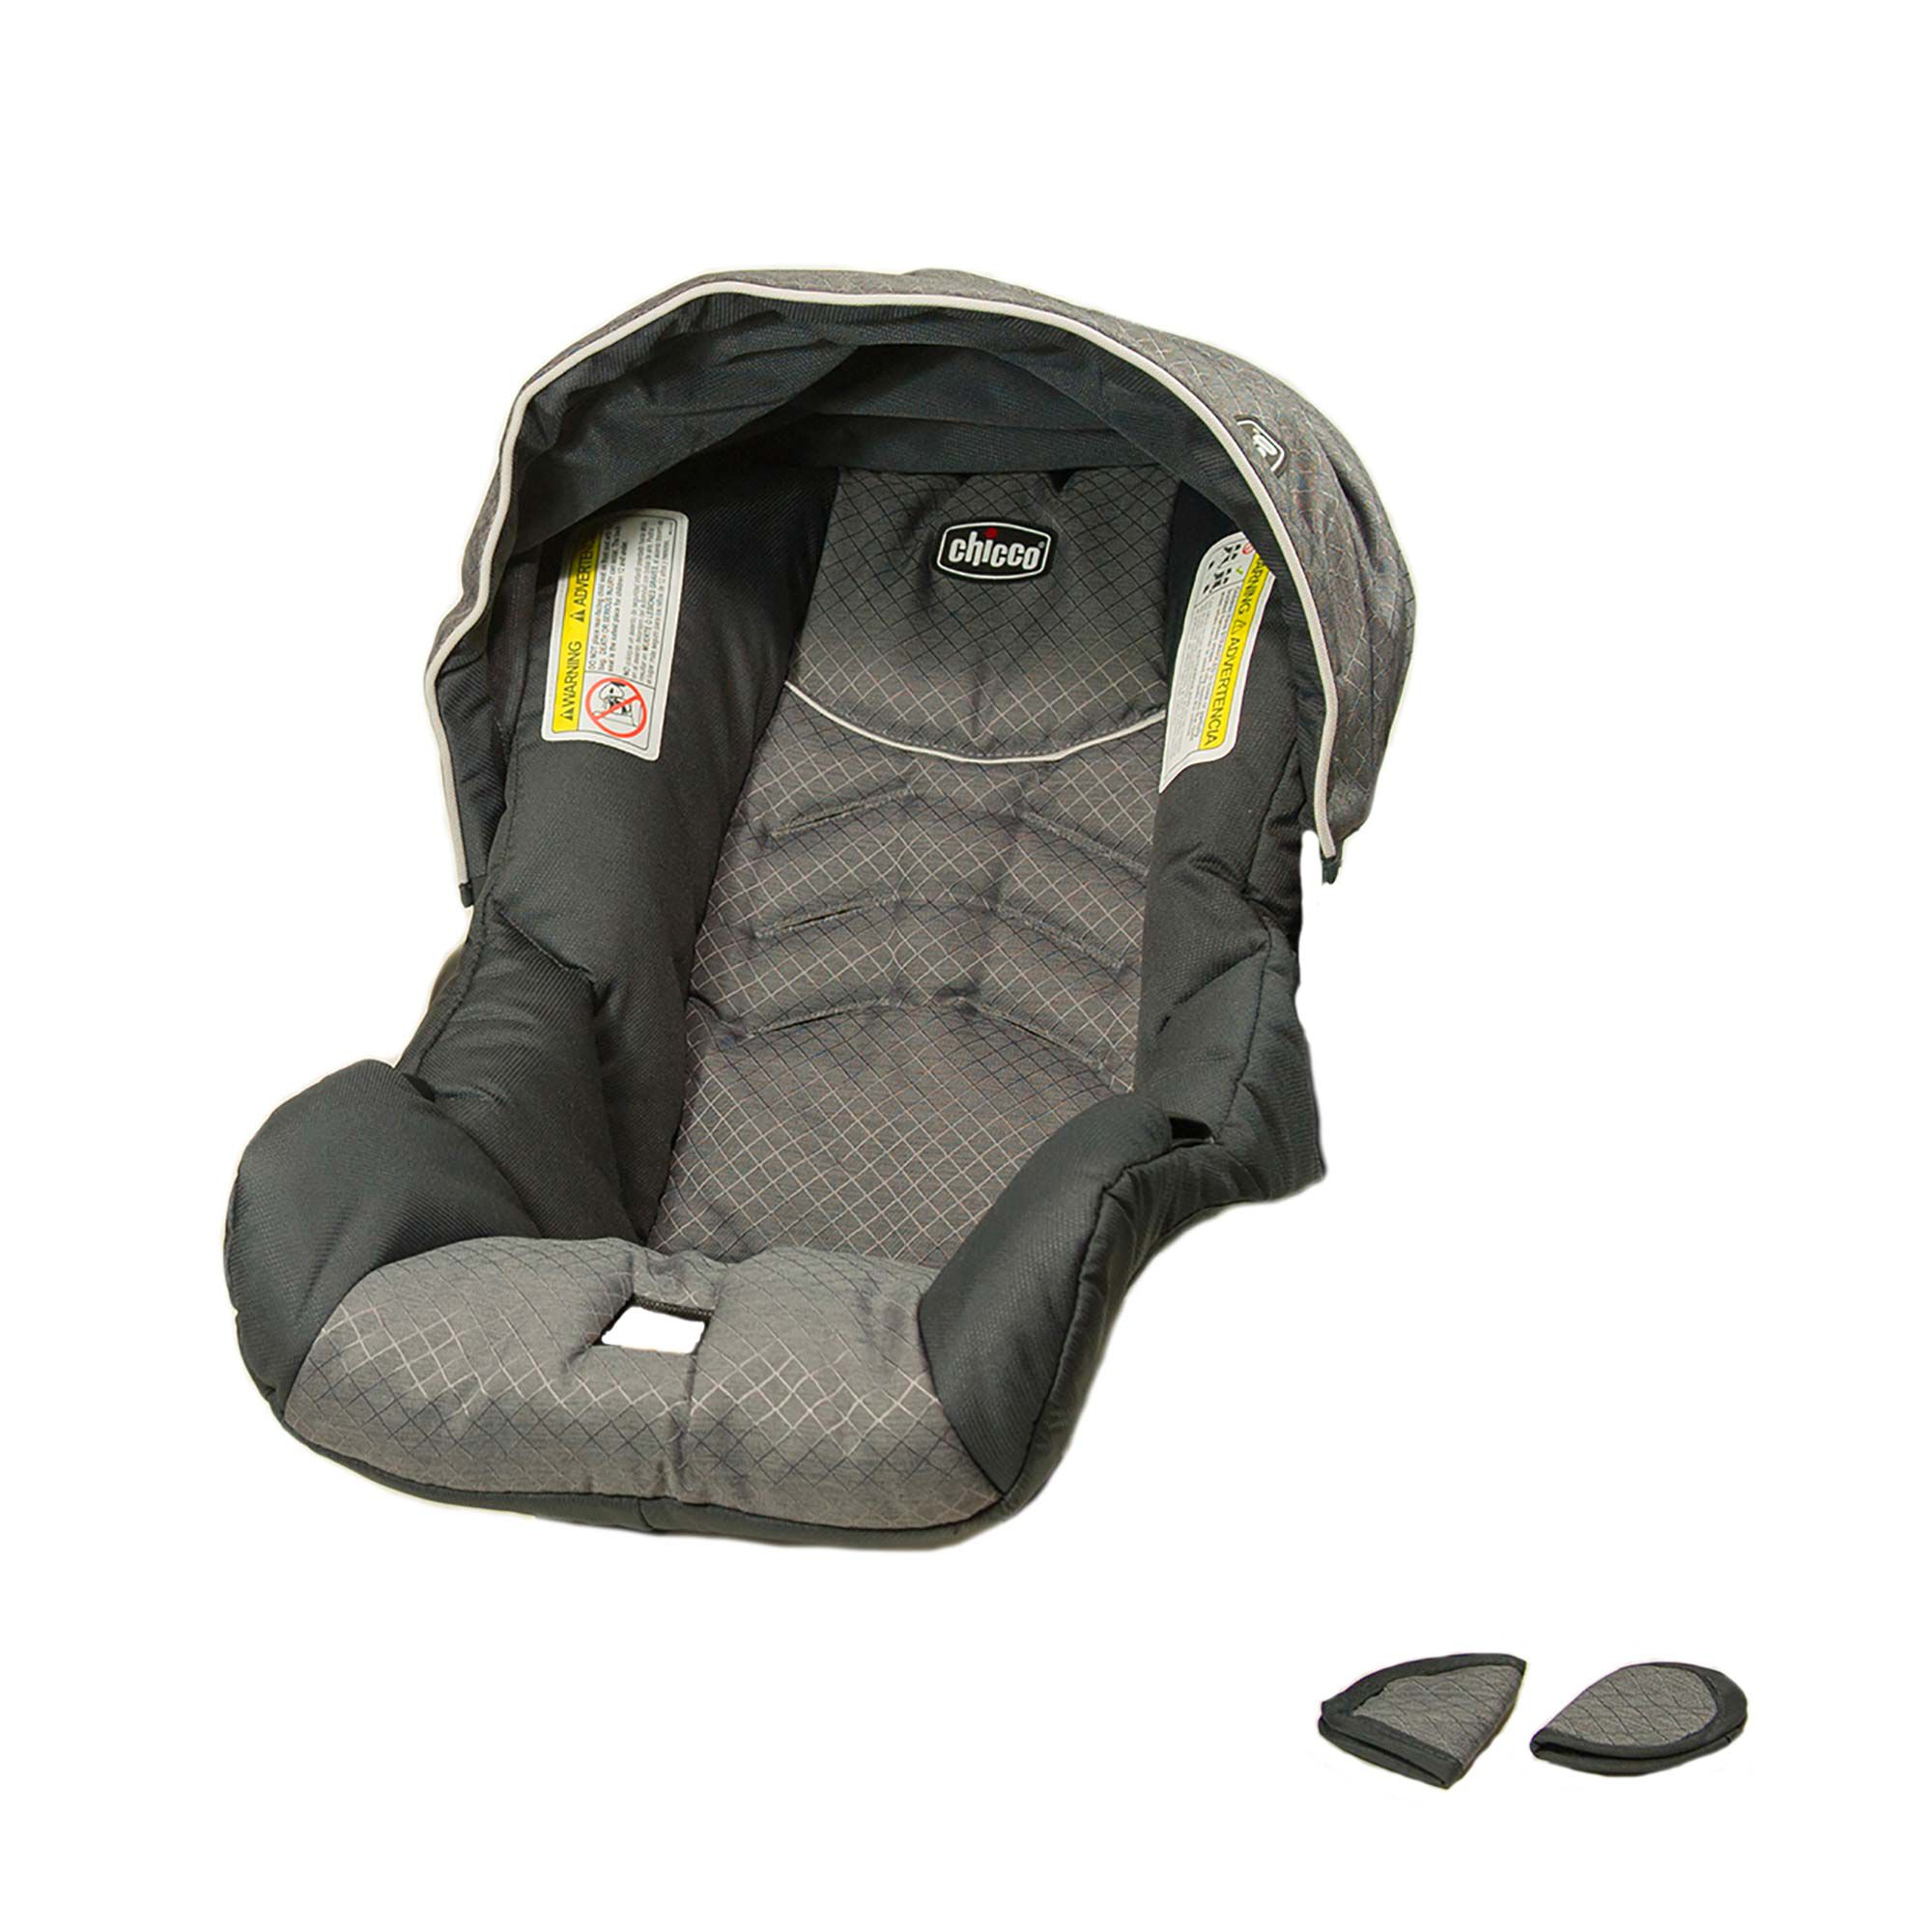 Replacement Chicco KeyFit Car Seat Cover Canopy And Shoulder Pads